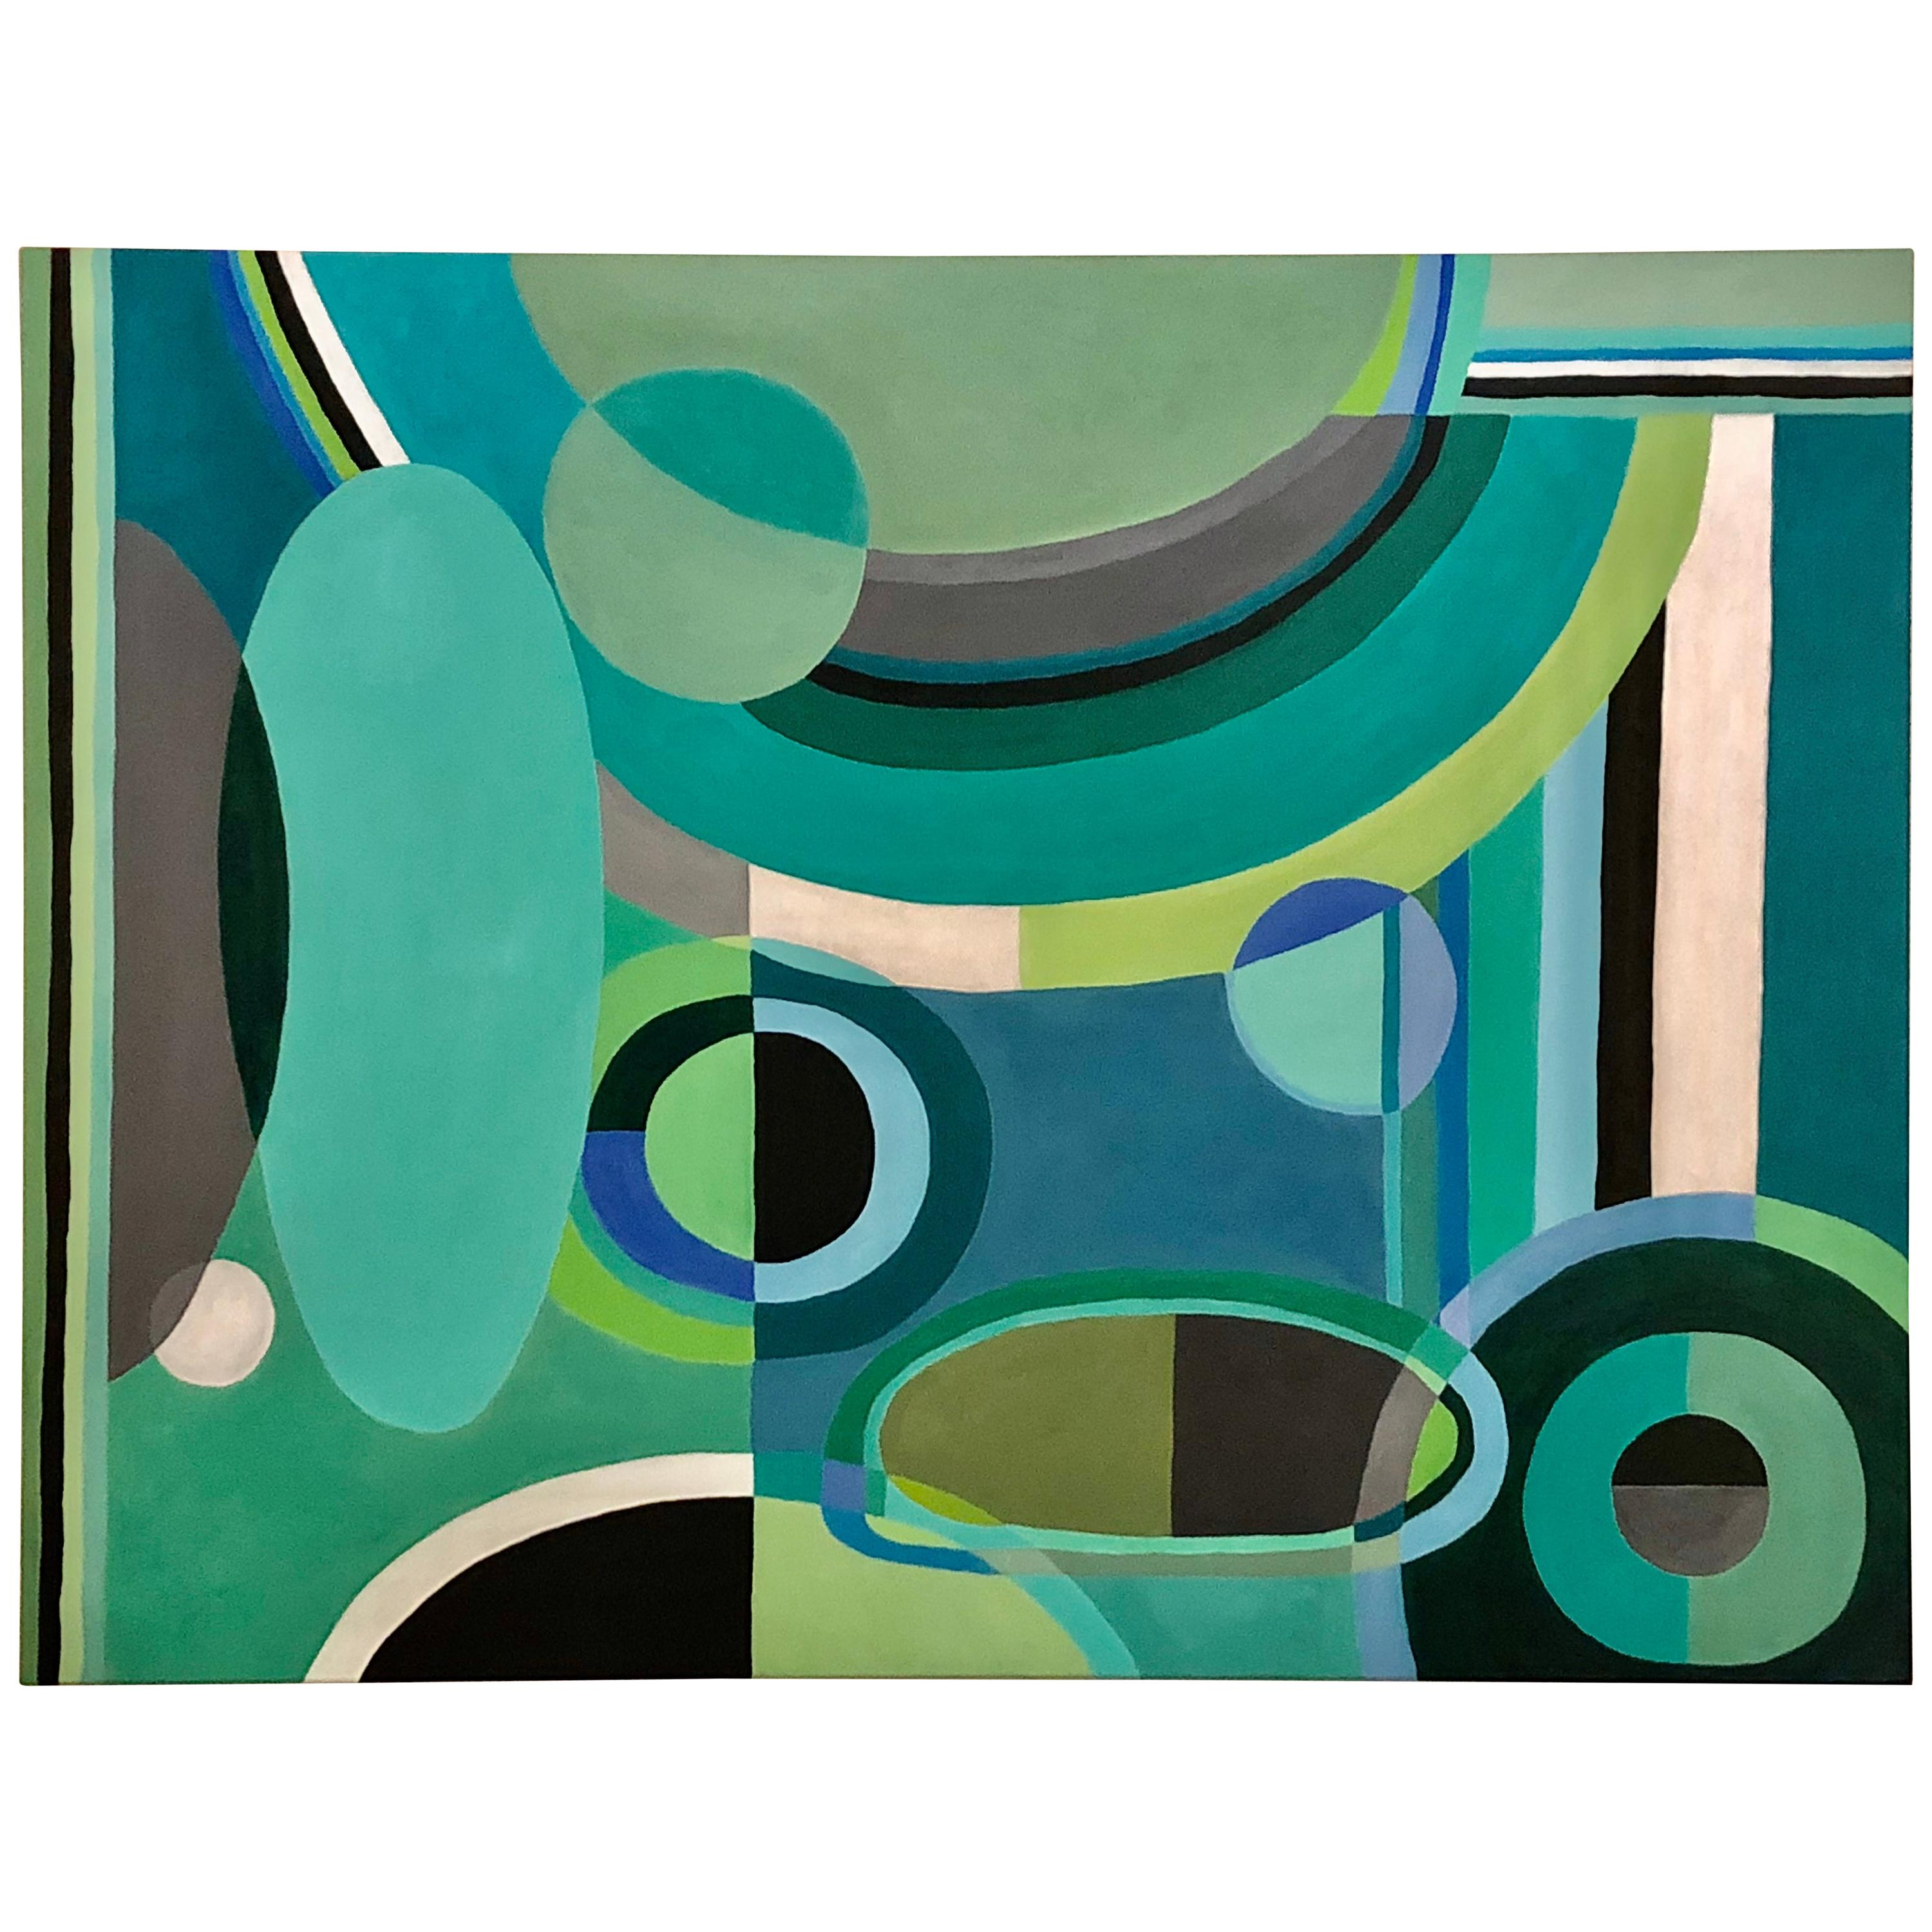 Striking Large Rectangular Abstract Painting in Blues and Greens